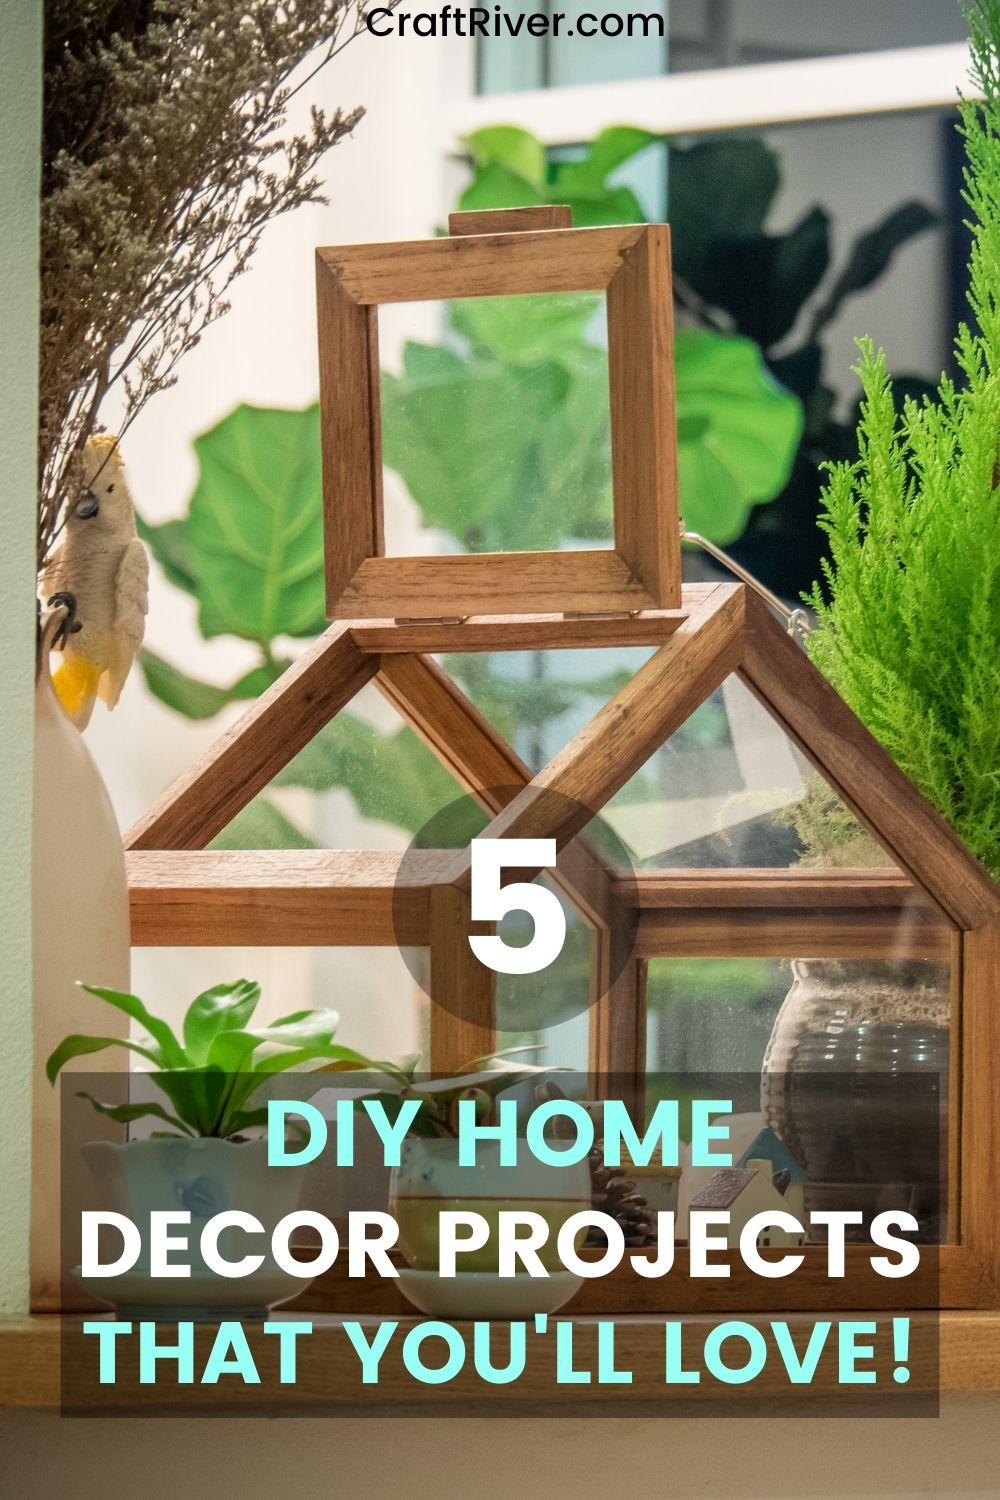 5 DIY Home Decor Projects